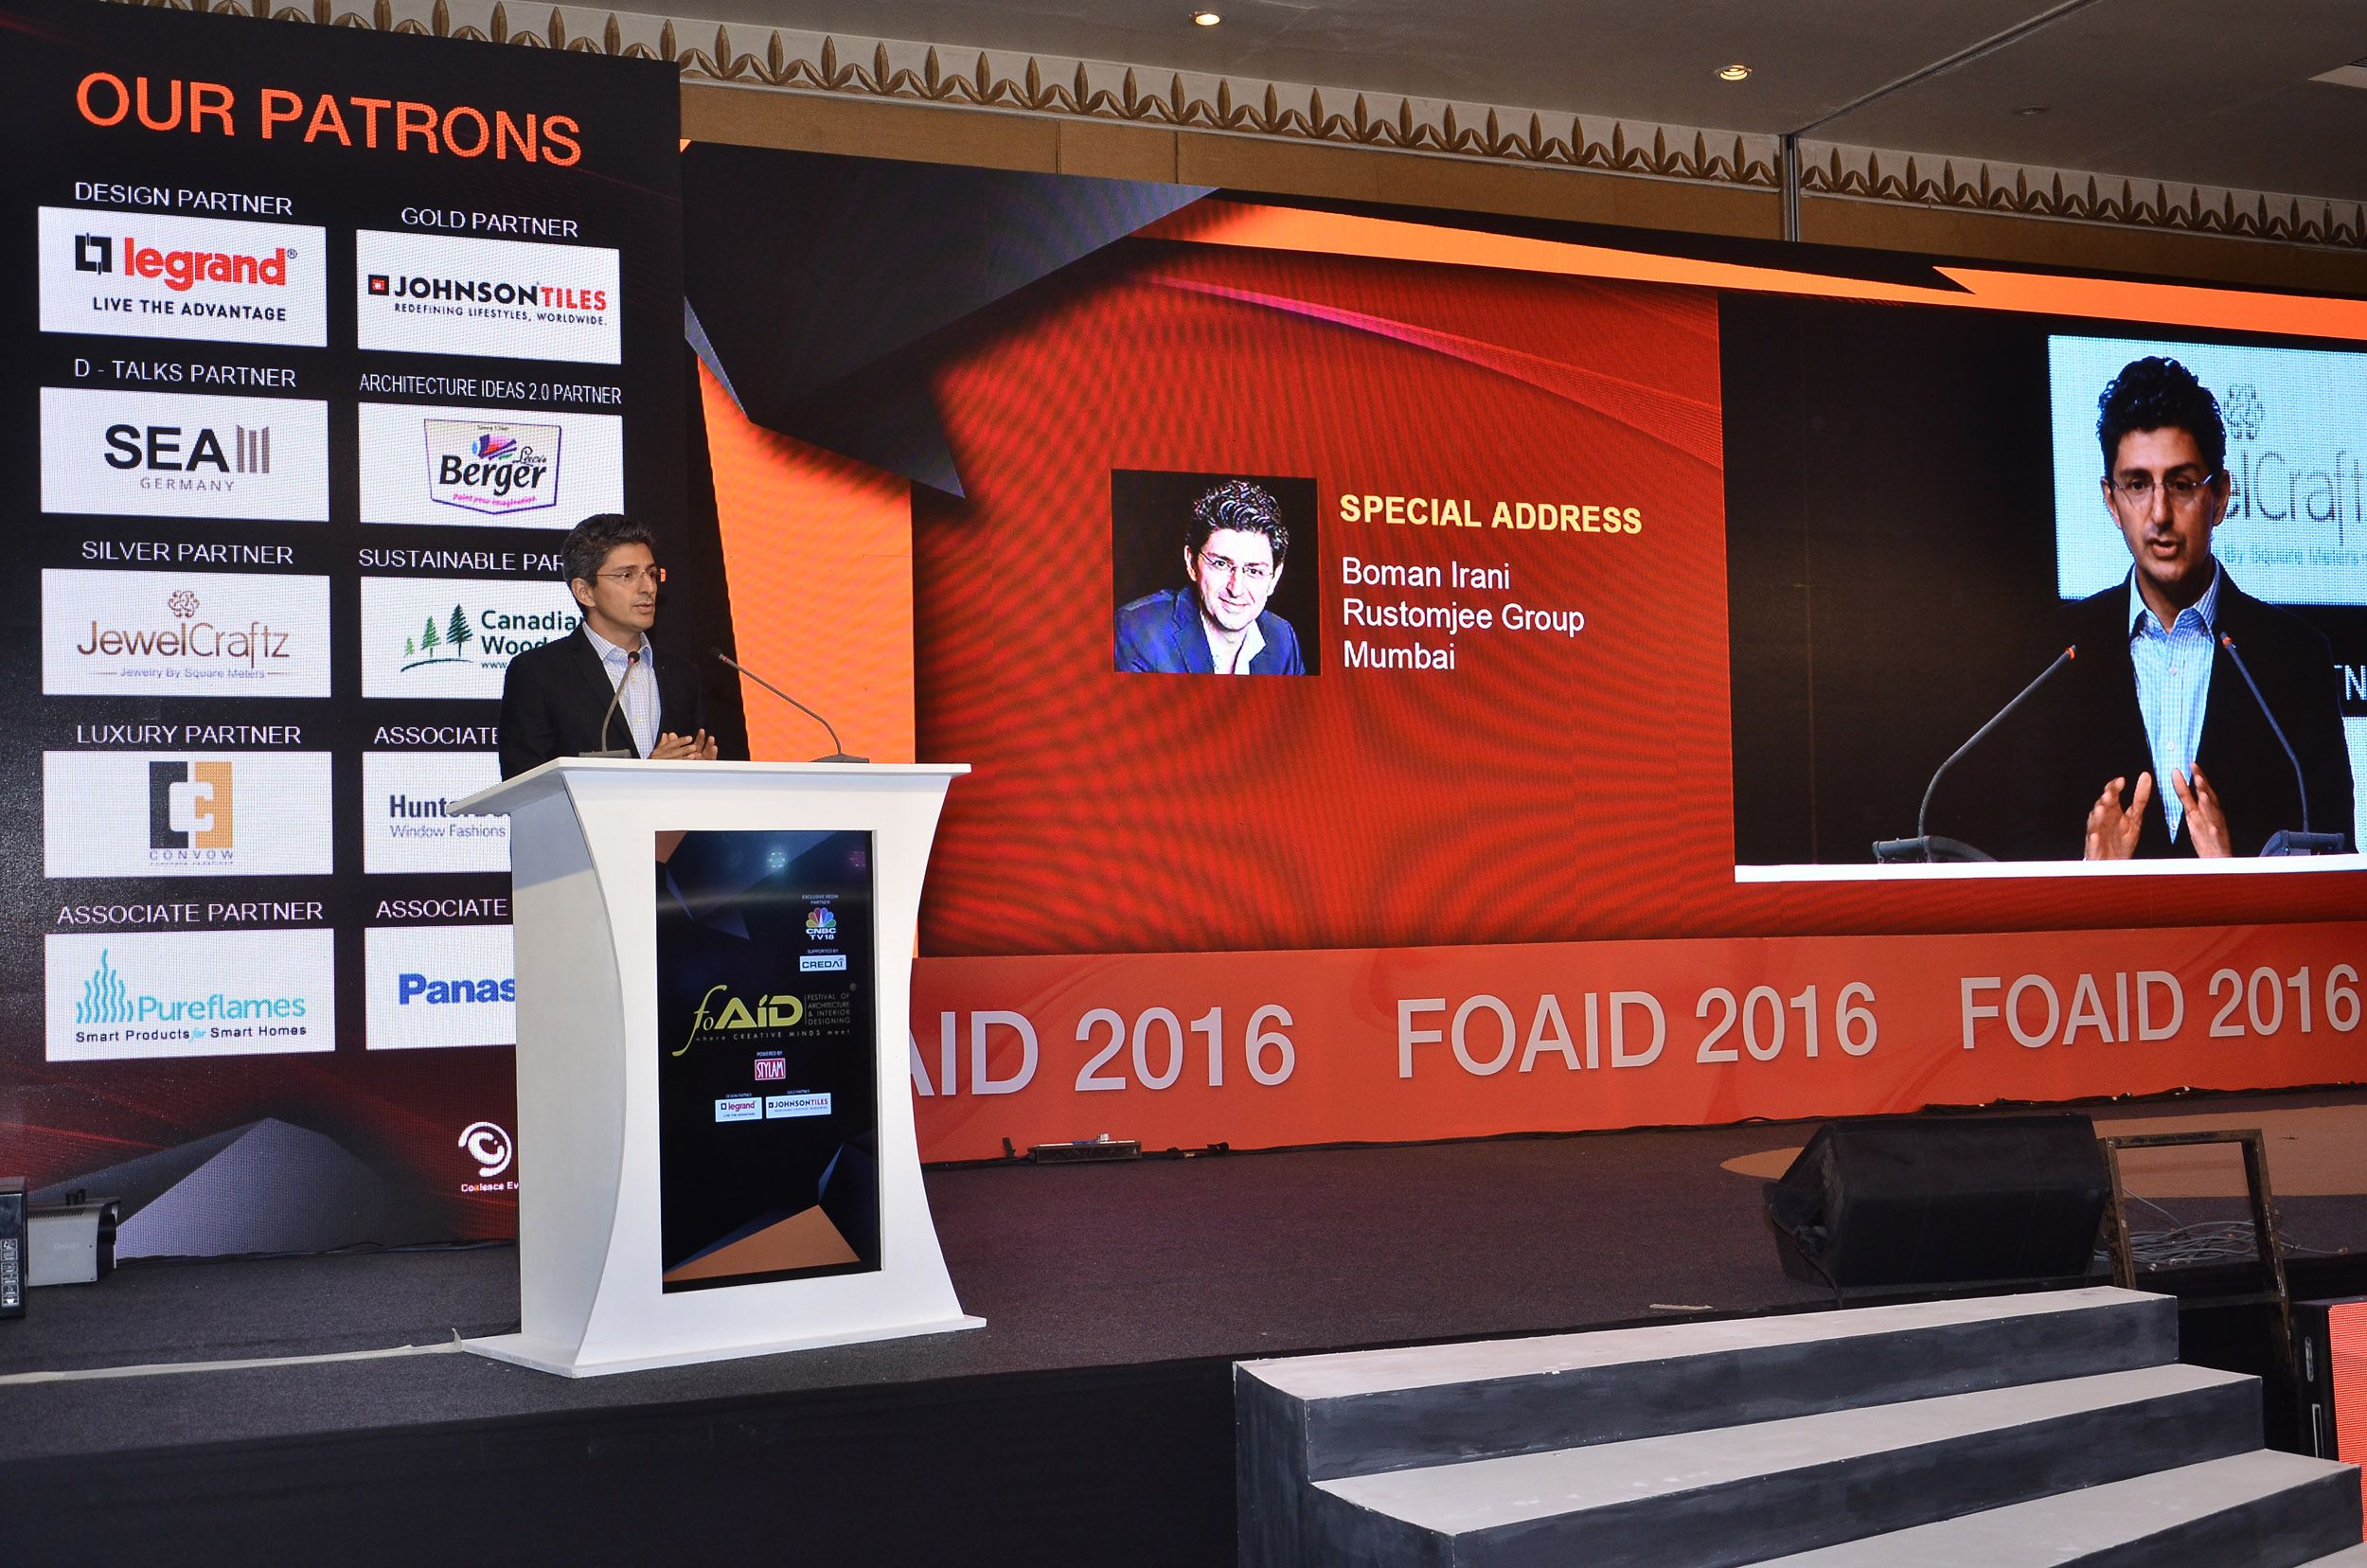 """""""Design is not about how it looks, it's about how it's used"""" Watch the exclusive talk of a very young & inspiring leader of the Indian Real Estate industry at FOAID 2016, Mumbai edition - with Rustomjee Boman Rustom Irani  Link - https://youtu.be/PAZx64t_wDY"""